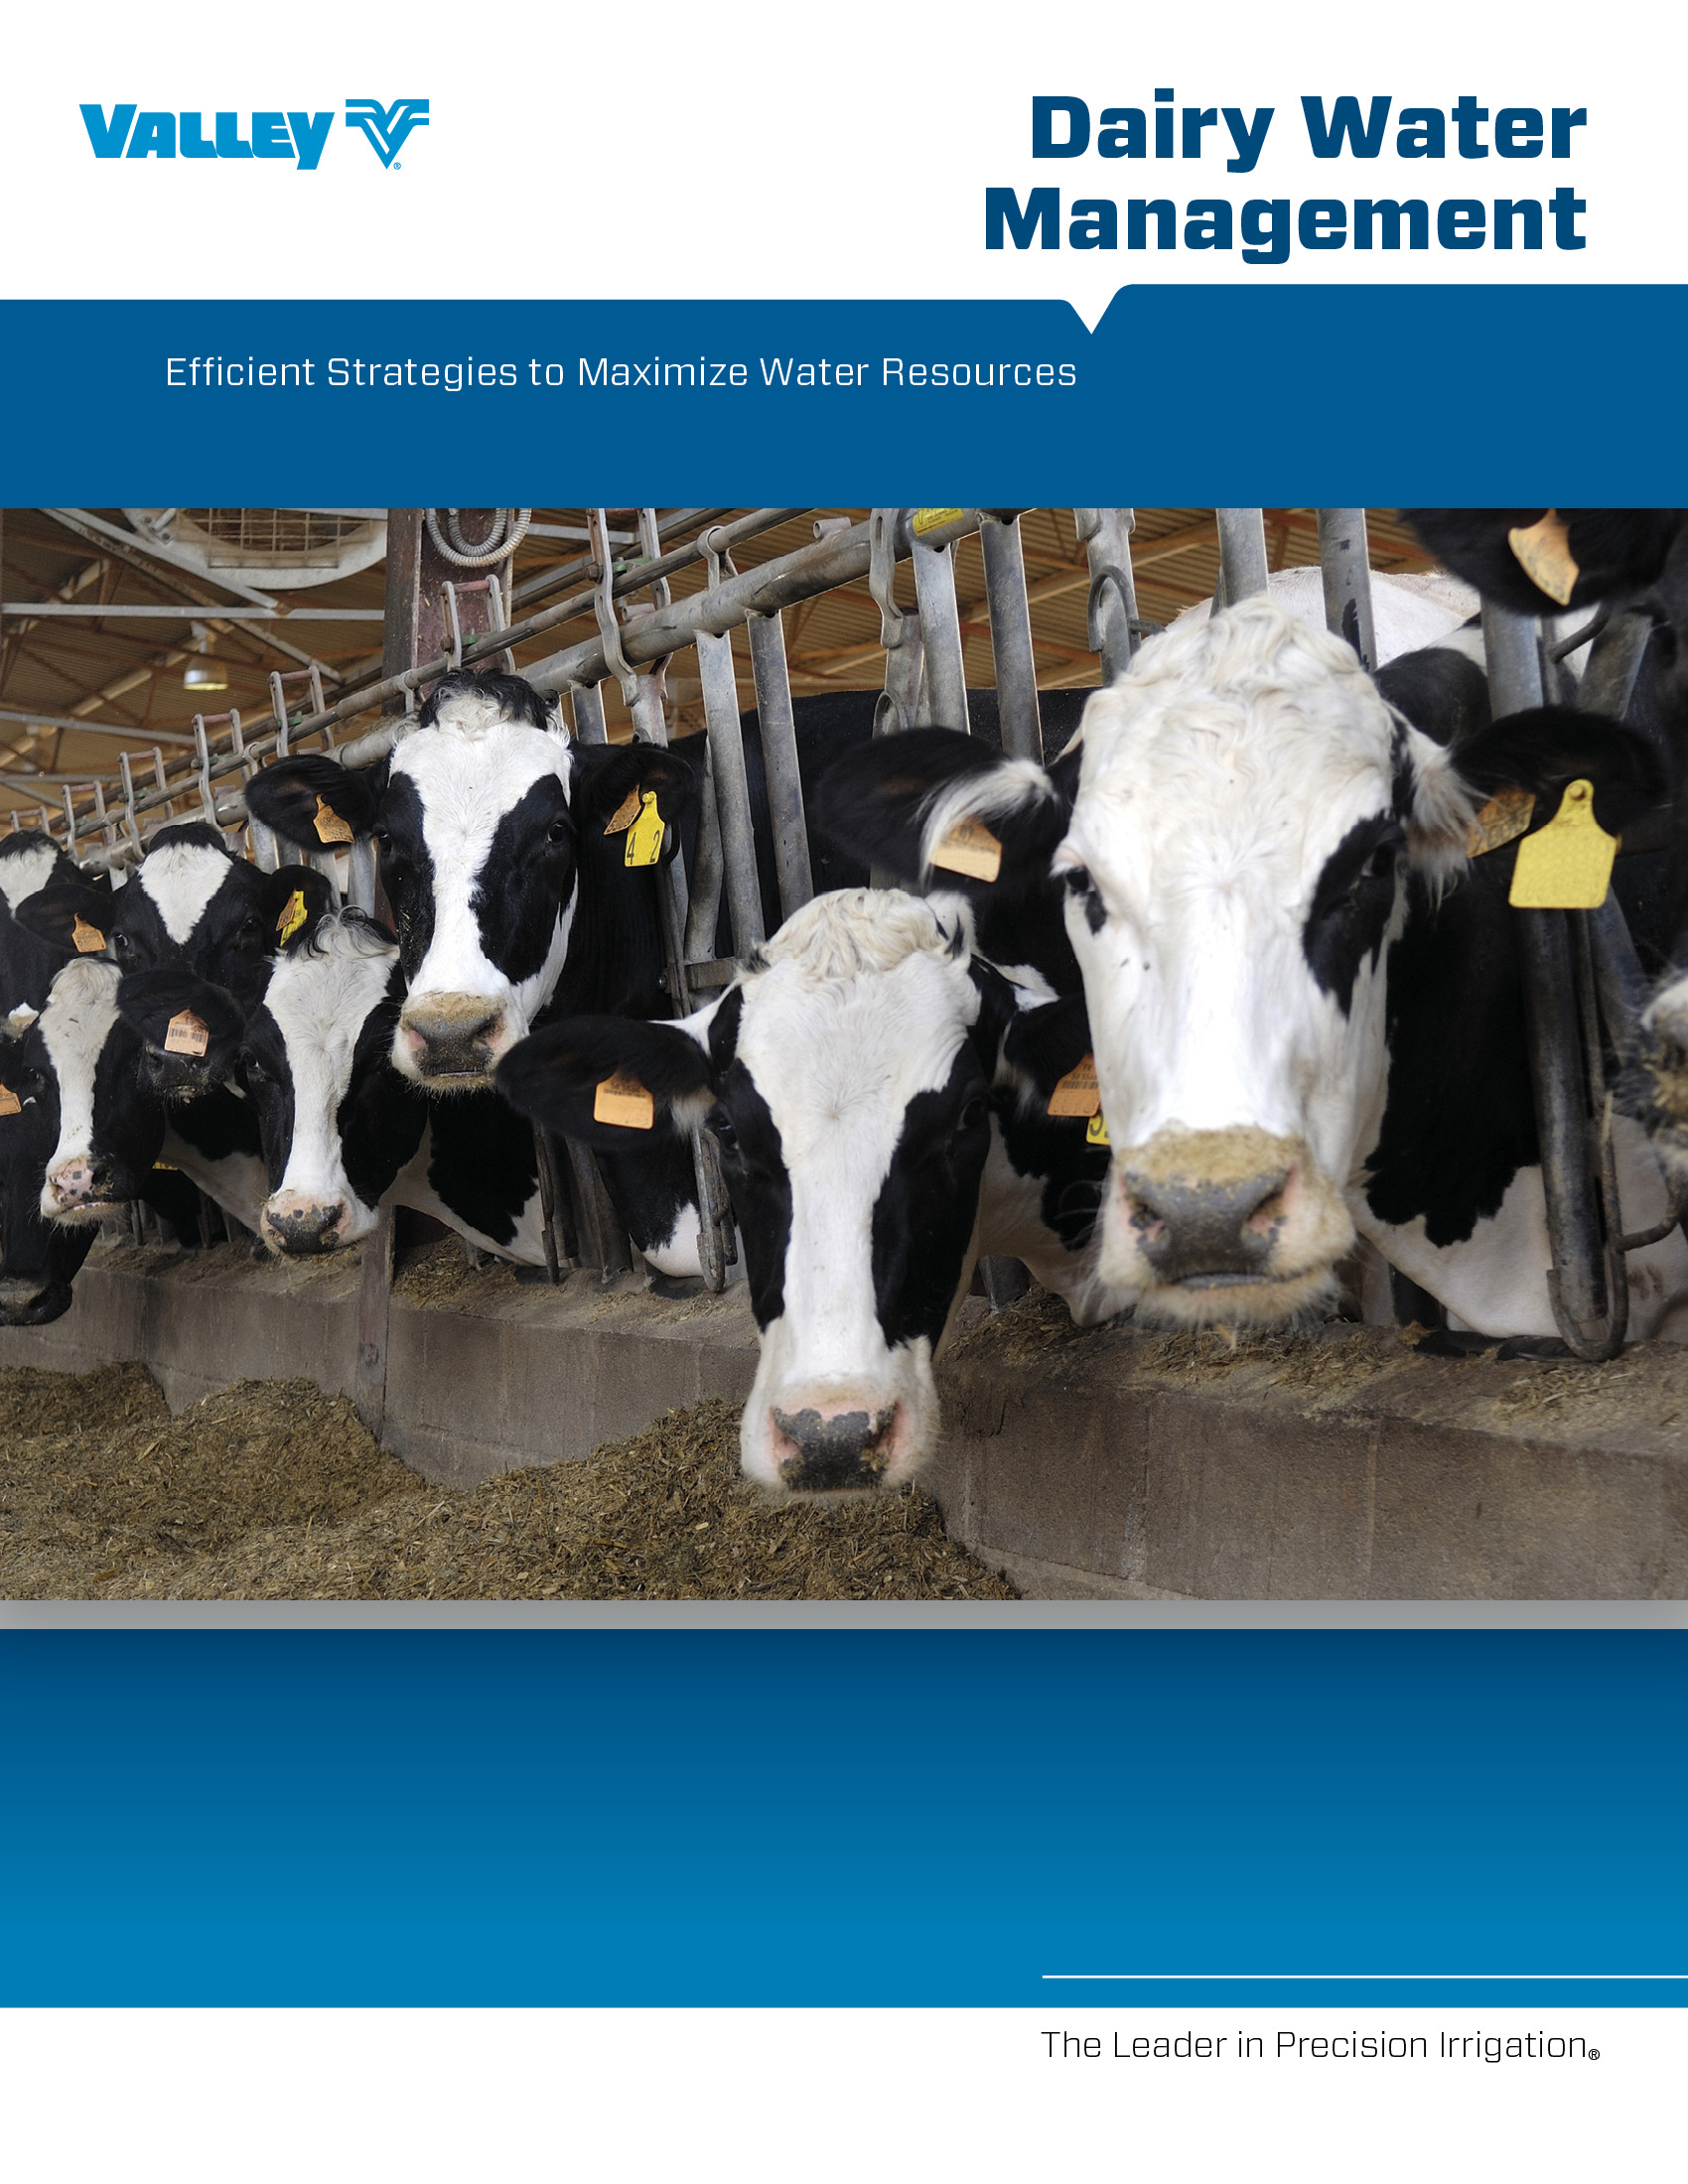 valley dairy management brochure cover